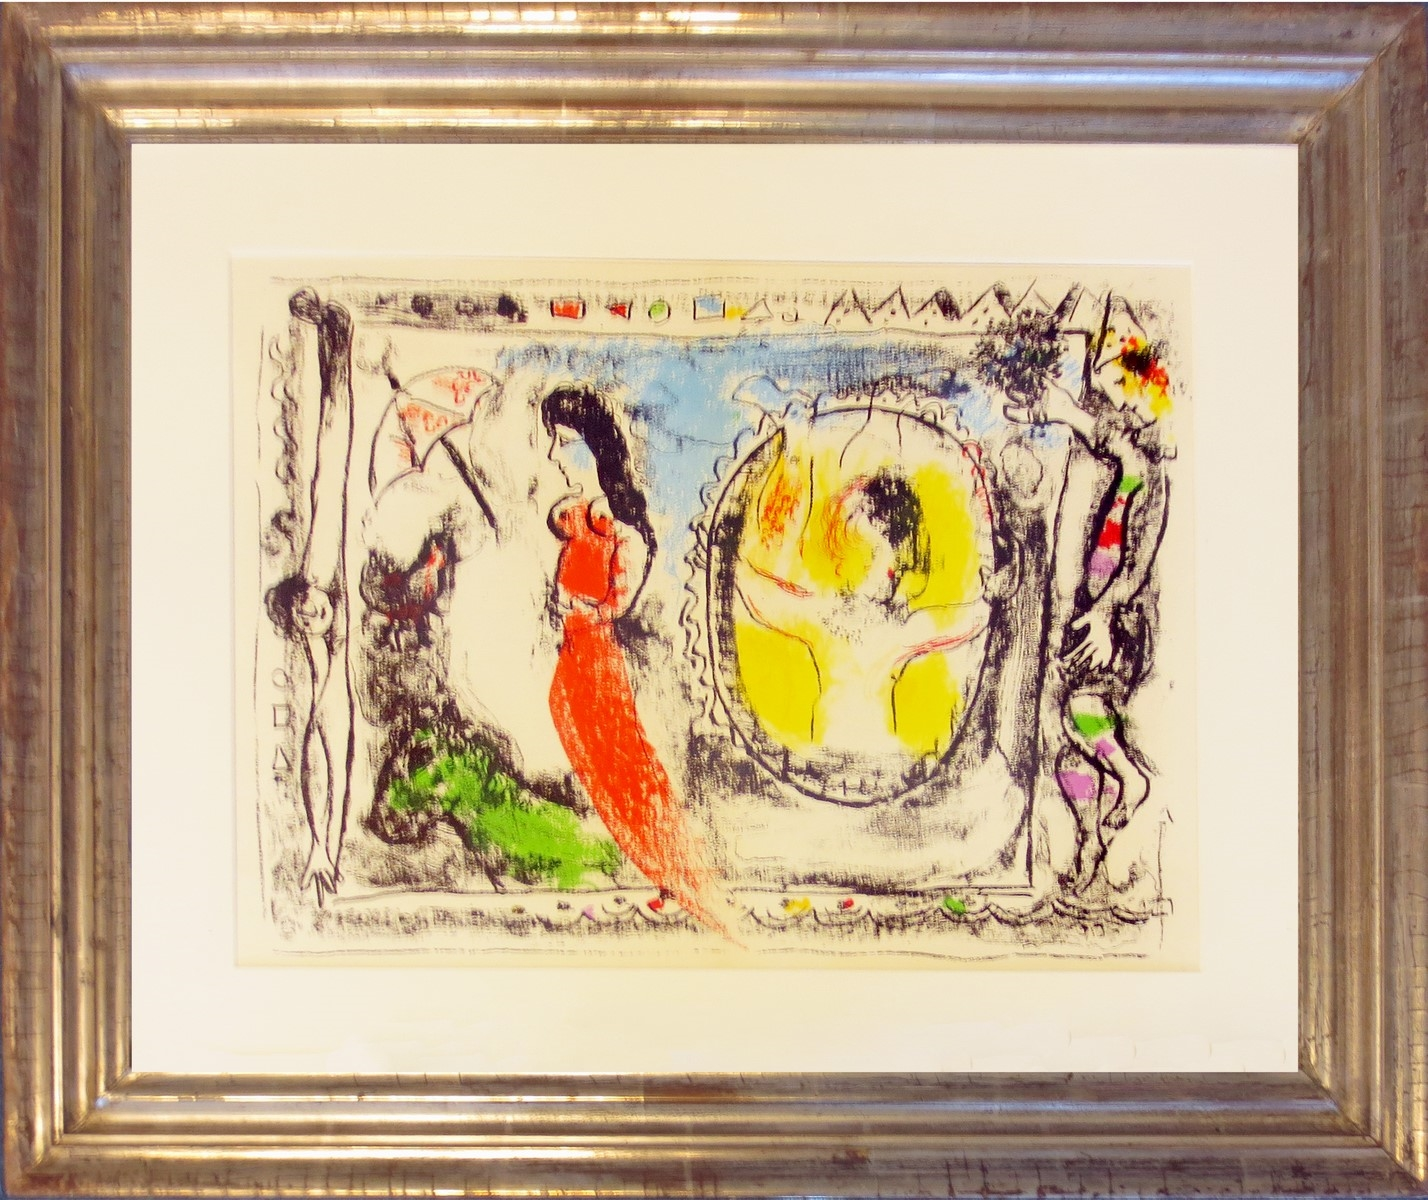 ZIRKUSSZENE – BEHIND THE LOOKING GLASS</br><h4>MARC CHAGALL</h4>